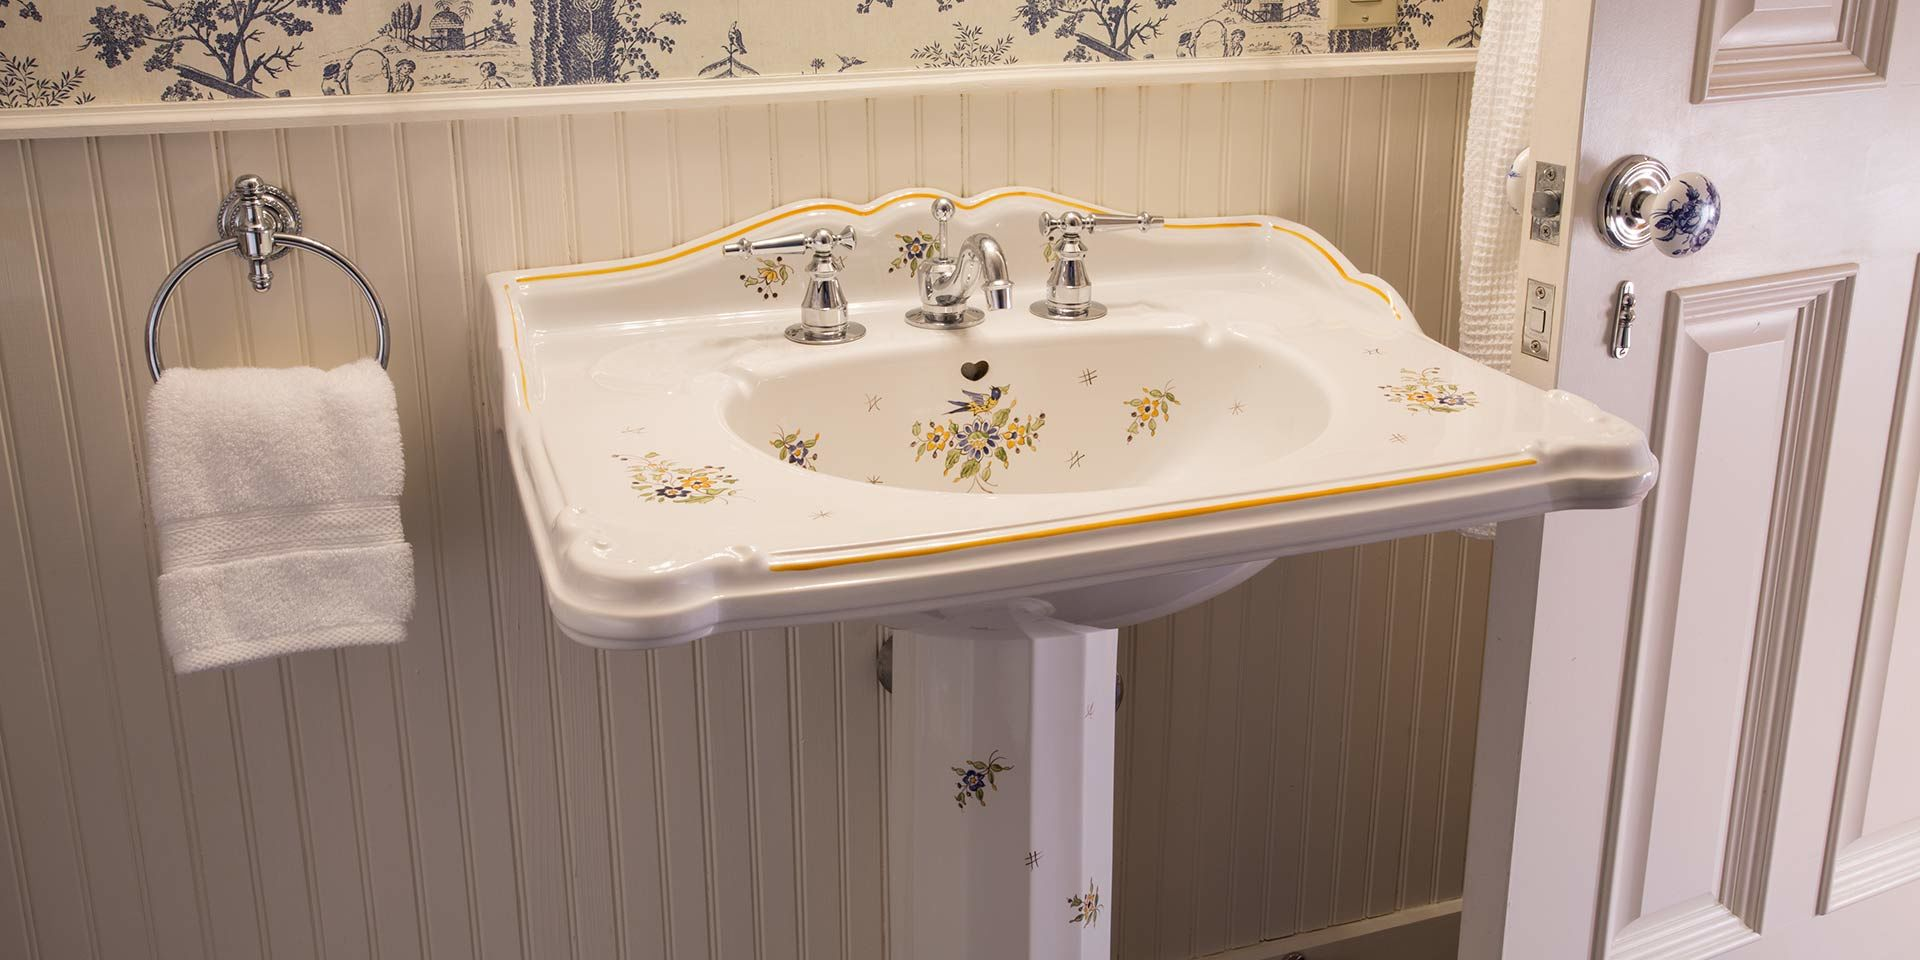 The sink inside the bathroom of the French Provincial Guest Room